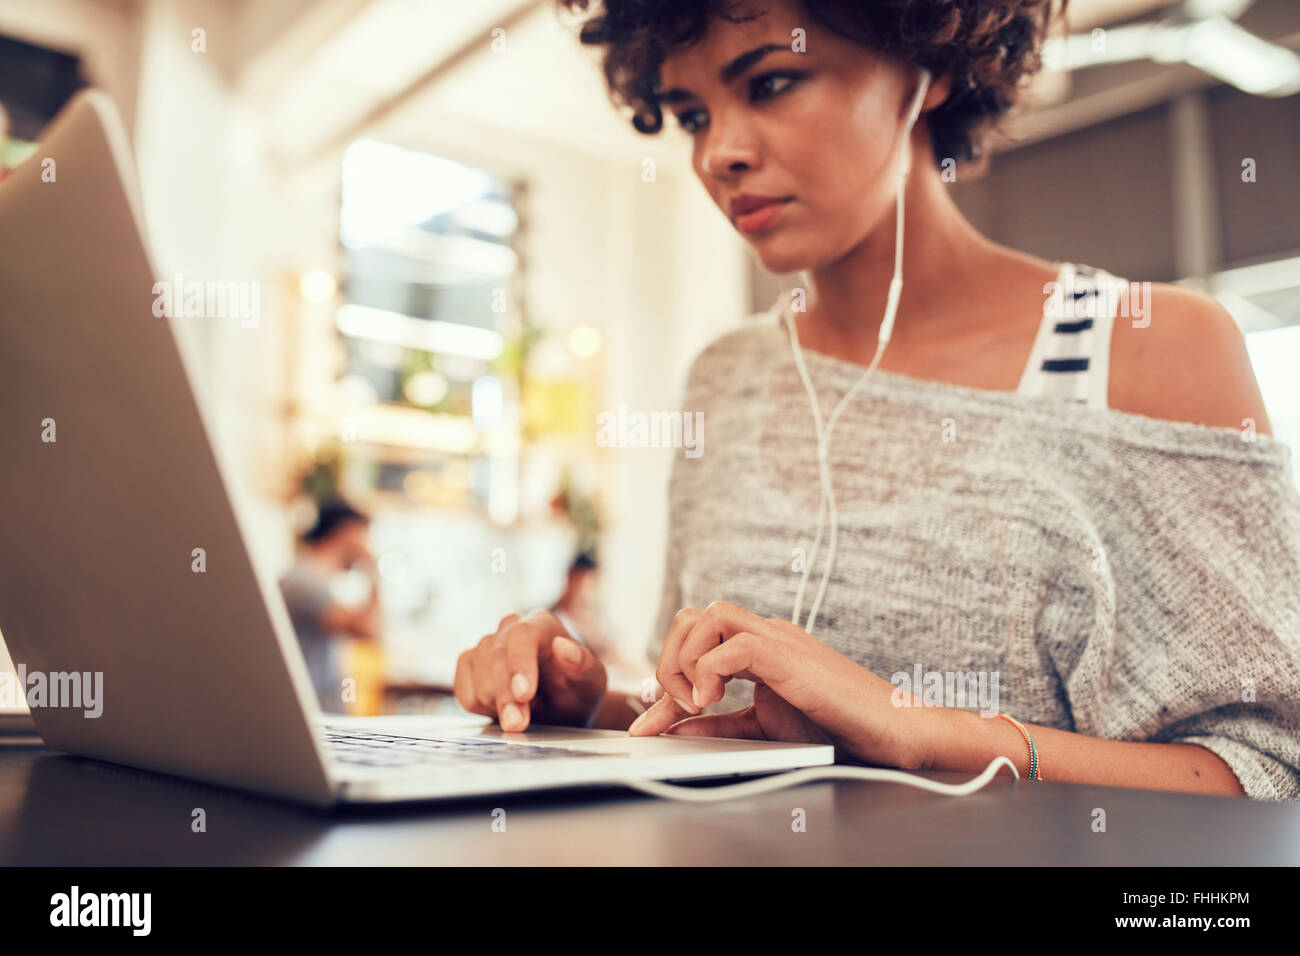 Portrait of young woman looking busy working on laptop at a cafe. African woman sitting in coffee shop using laptop. - Stock Image